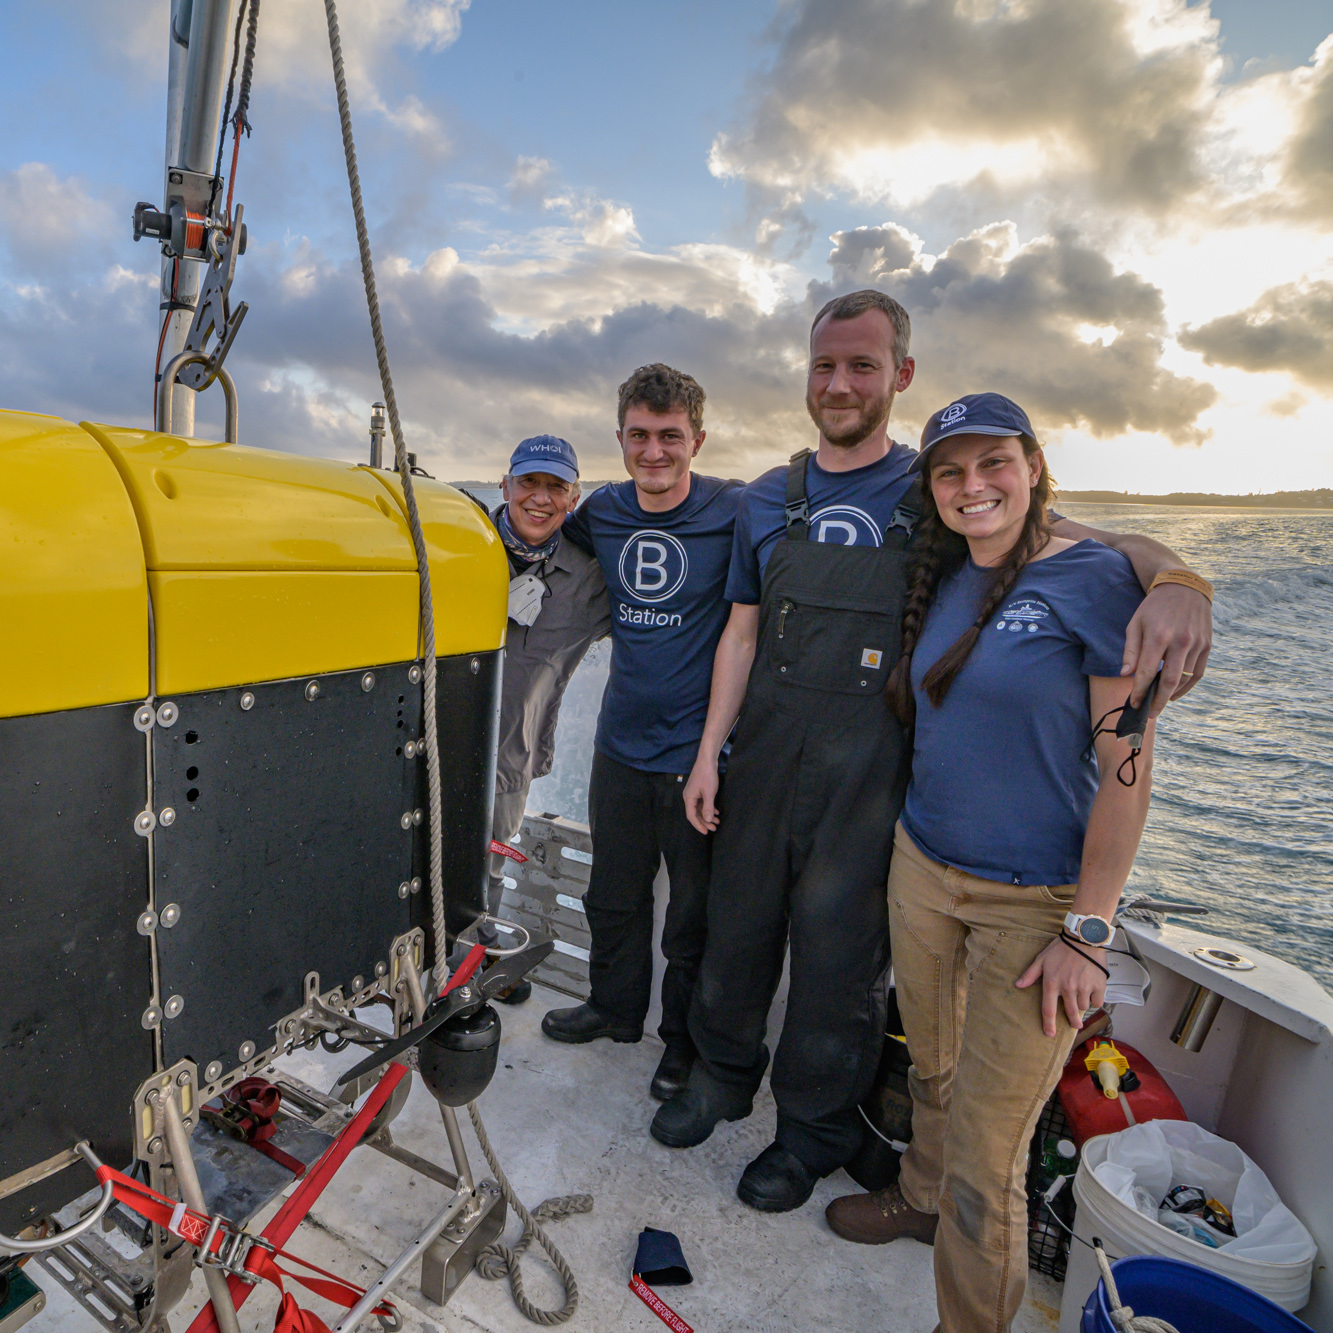 OTZ scientists and engineers Dana Yoerger, William Pardis, Eric Hayden, and Molly Curran (left to right) pose next to Mesobot, an autonomous underwater vehicle built to explore life in the twilight zone, as it undergoes testing in Bermuda.